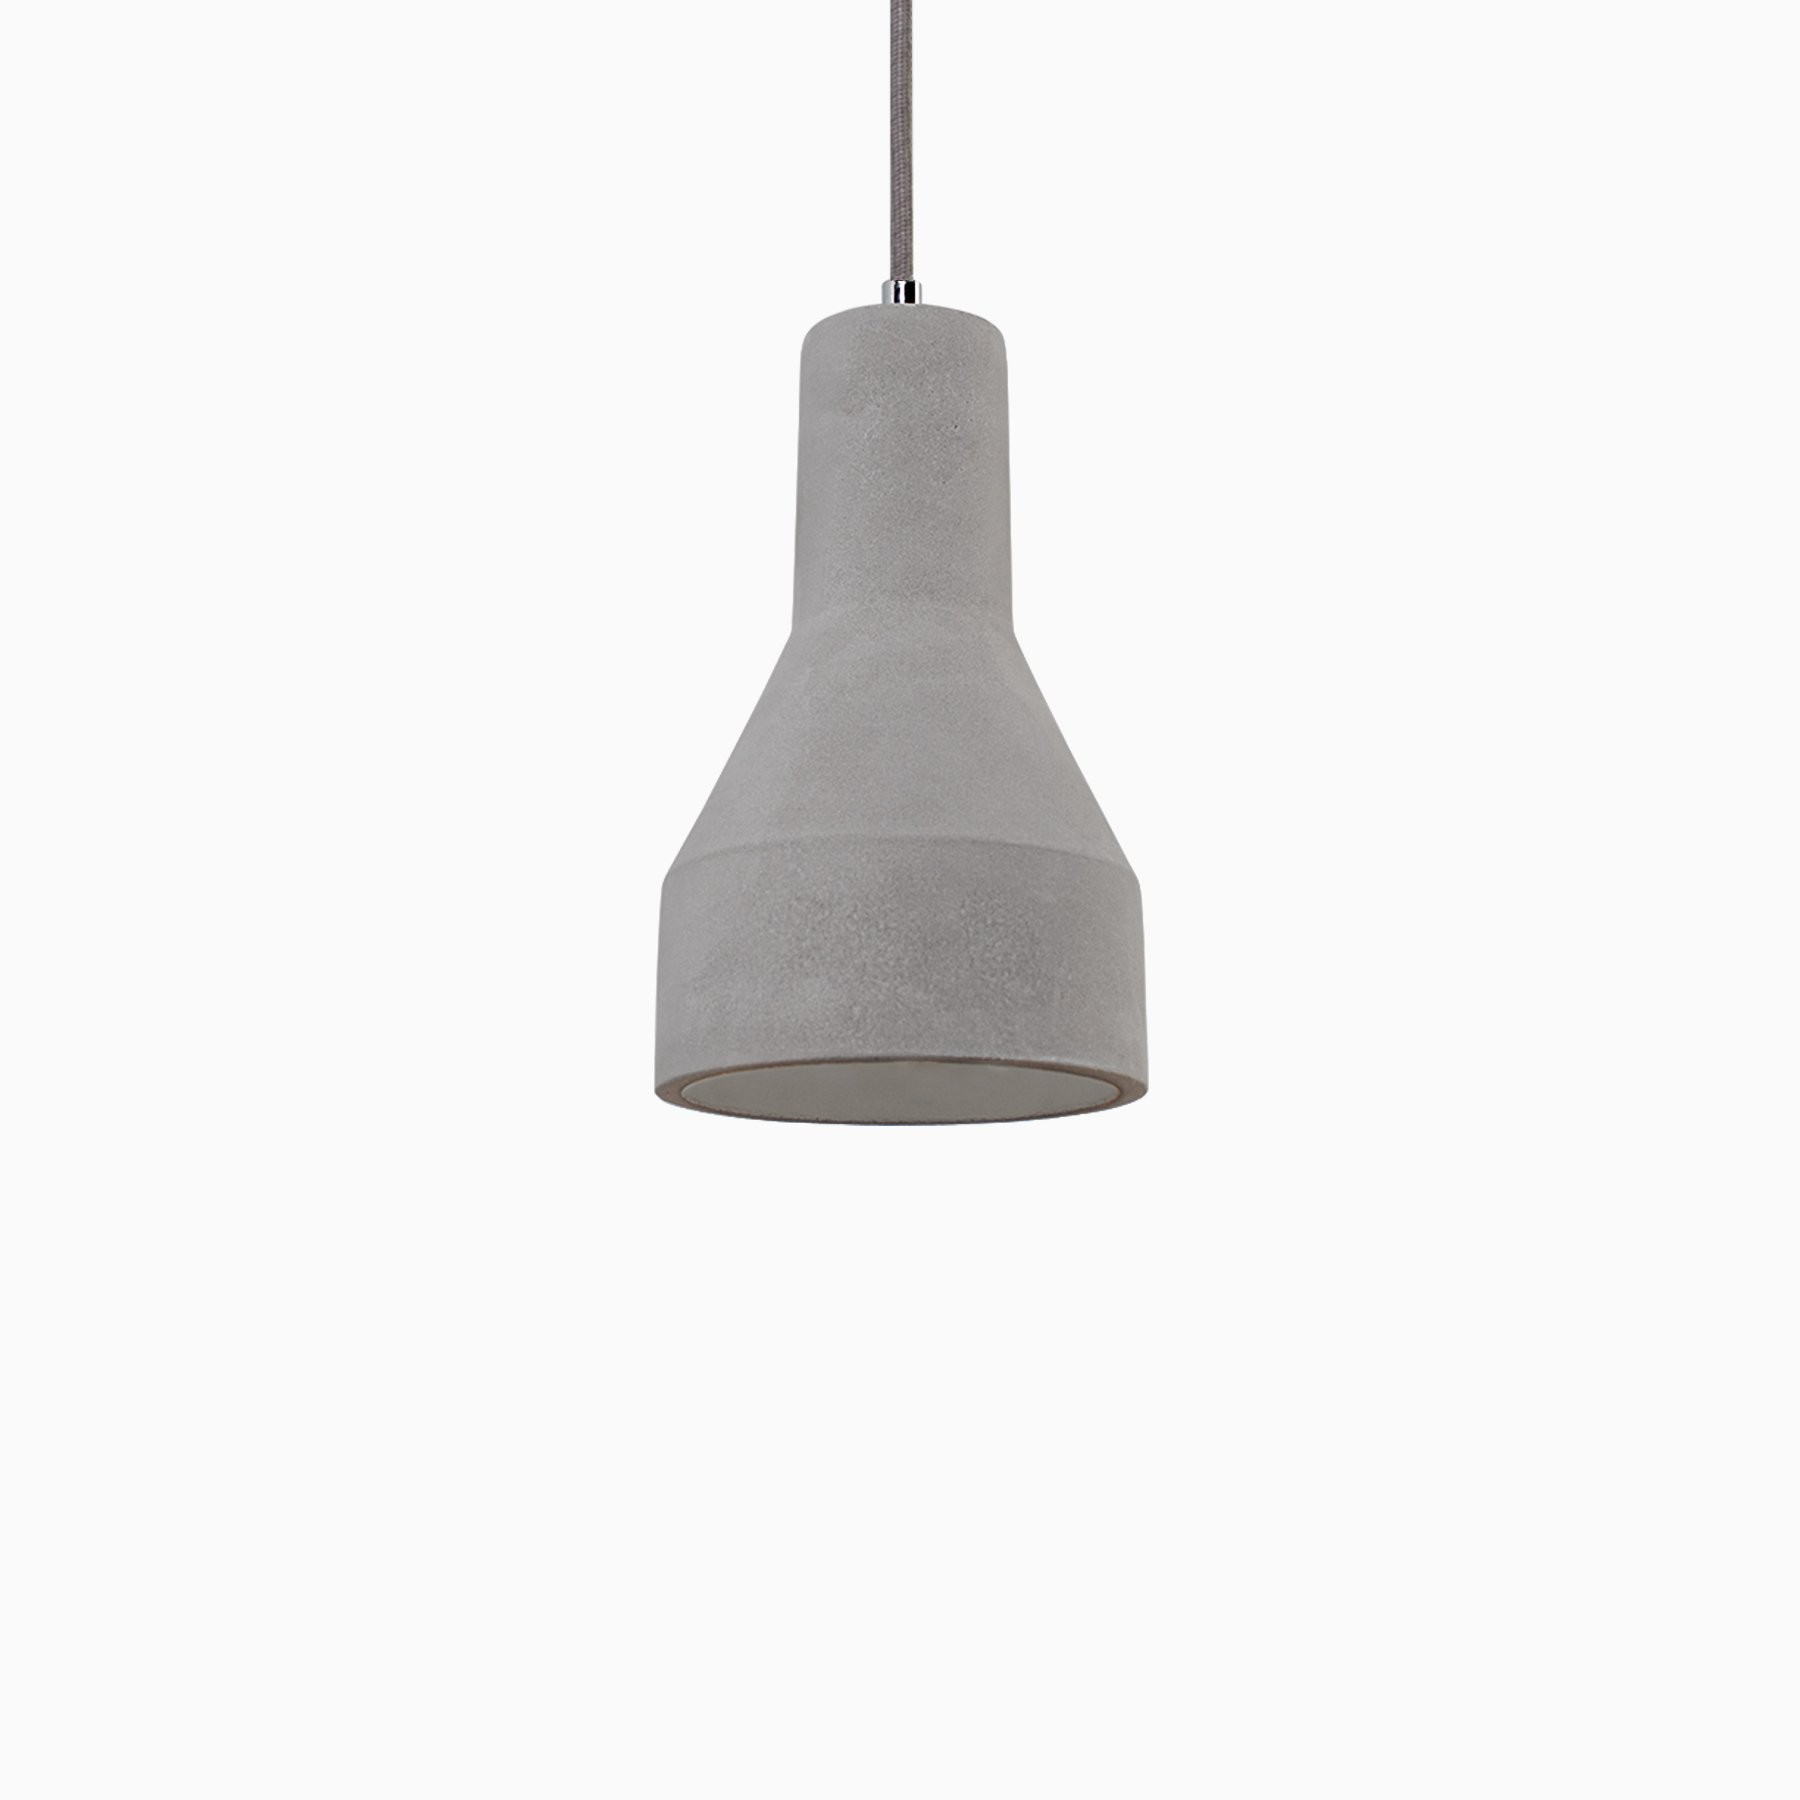 has thick this colour cast conical smooth an bauhaus and the esque is concrete mixing pendant form texture innovative a into moulded shape pin